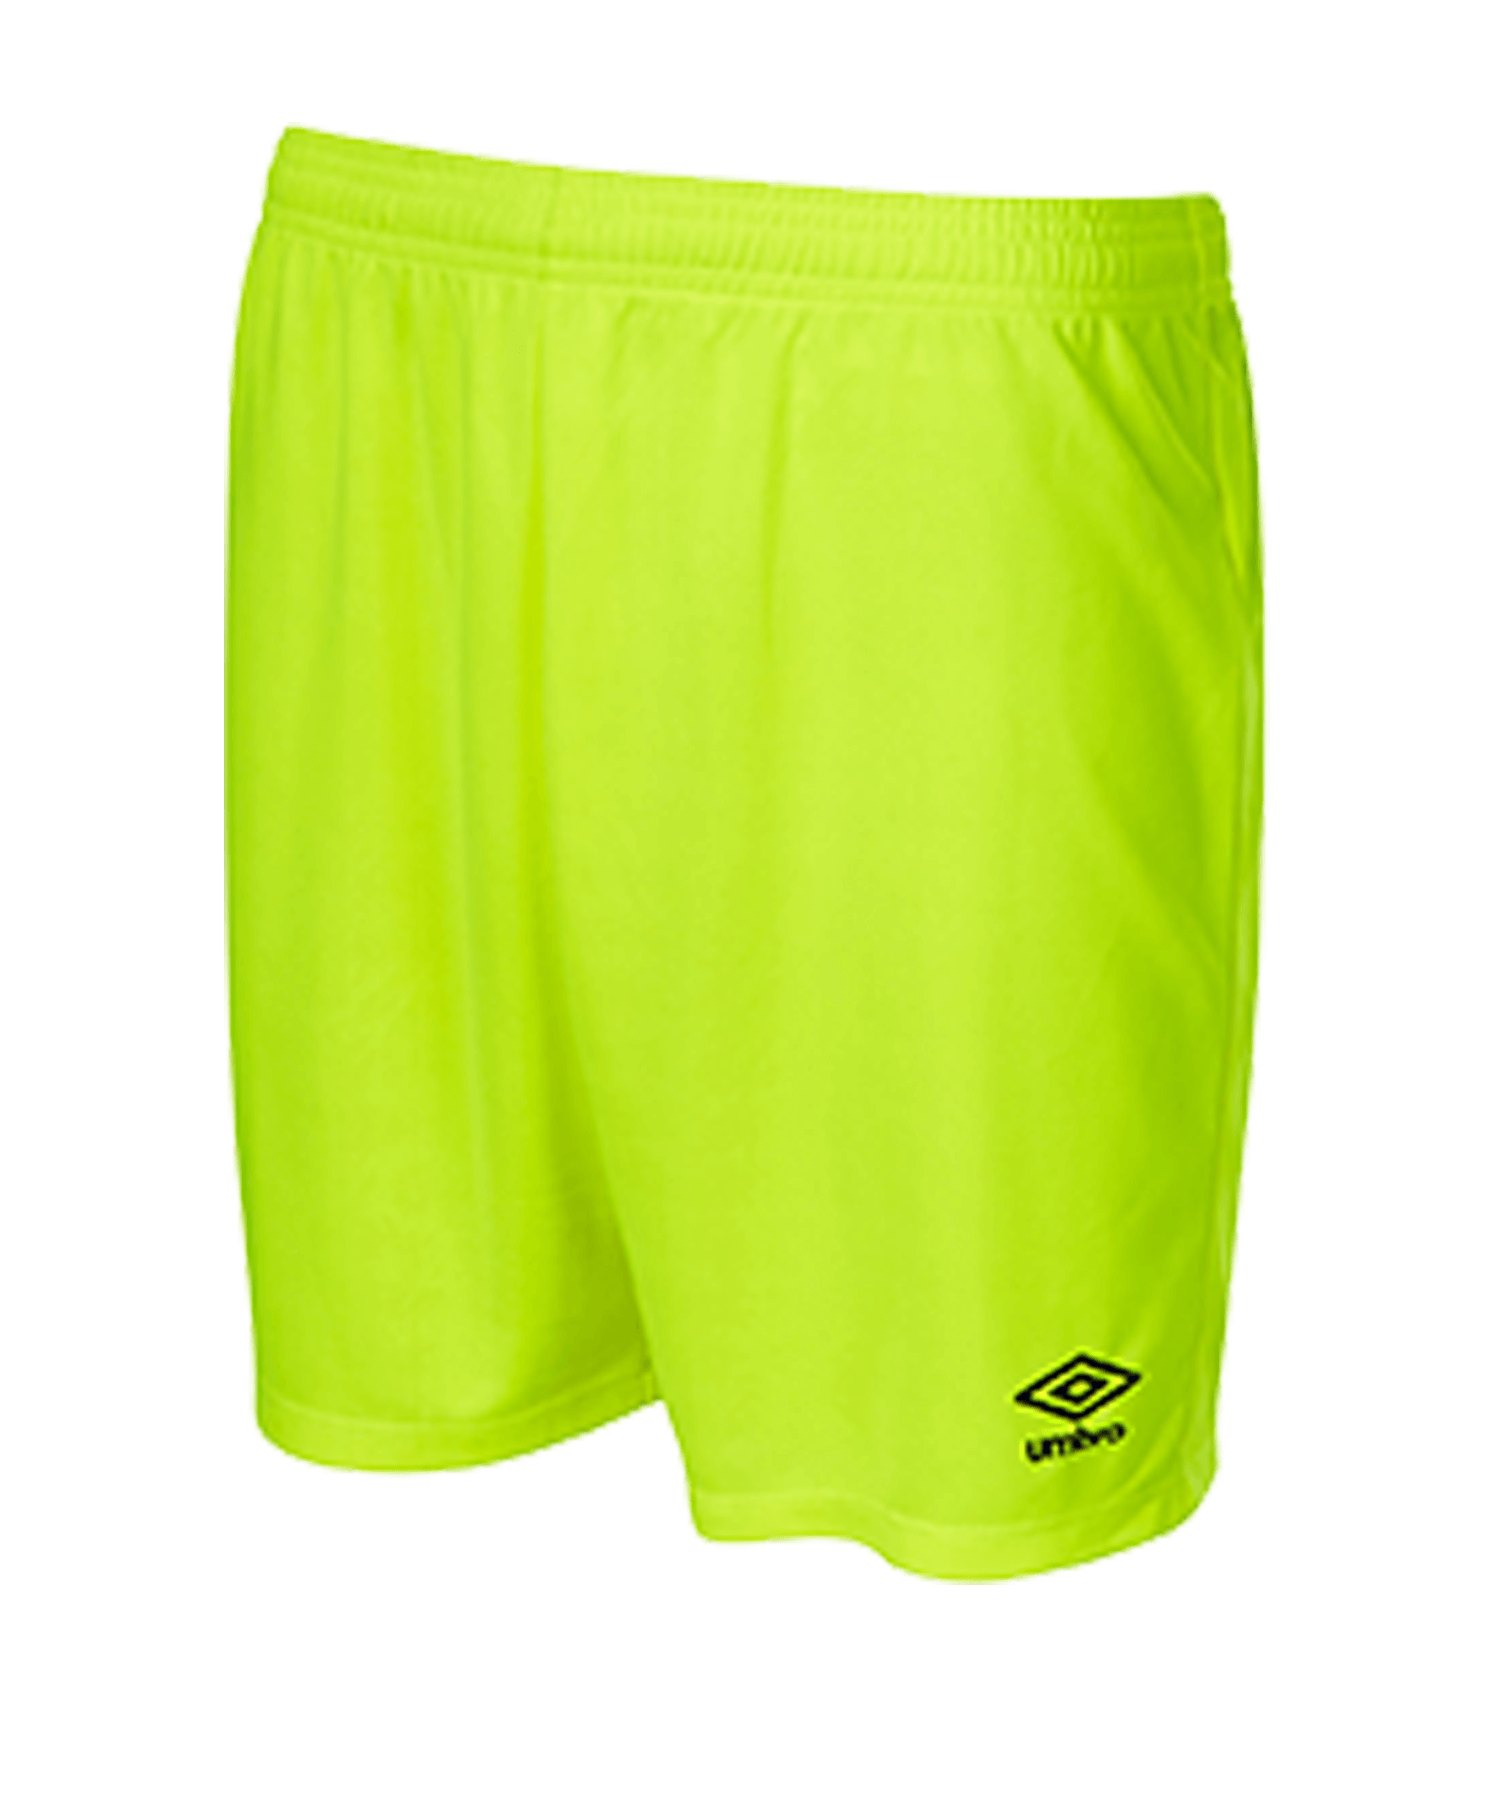 Umbro New Club Short Kids Gelb FFSZ - Gelb